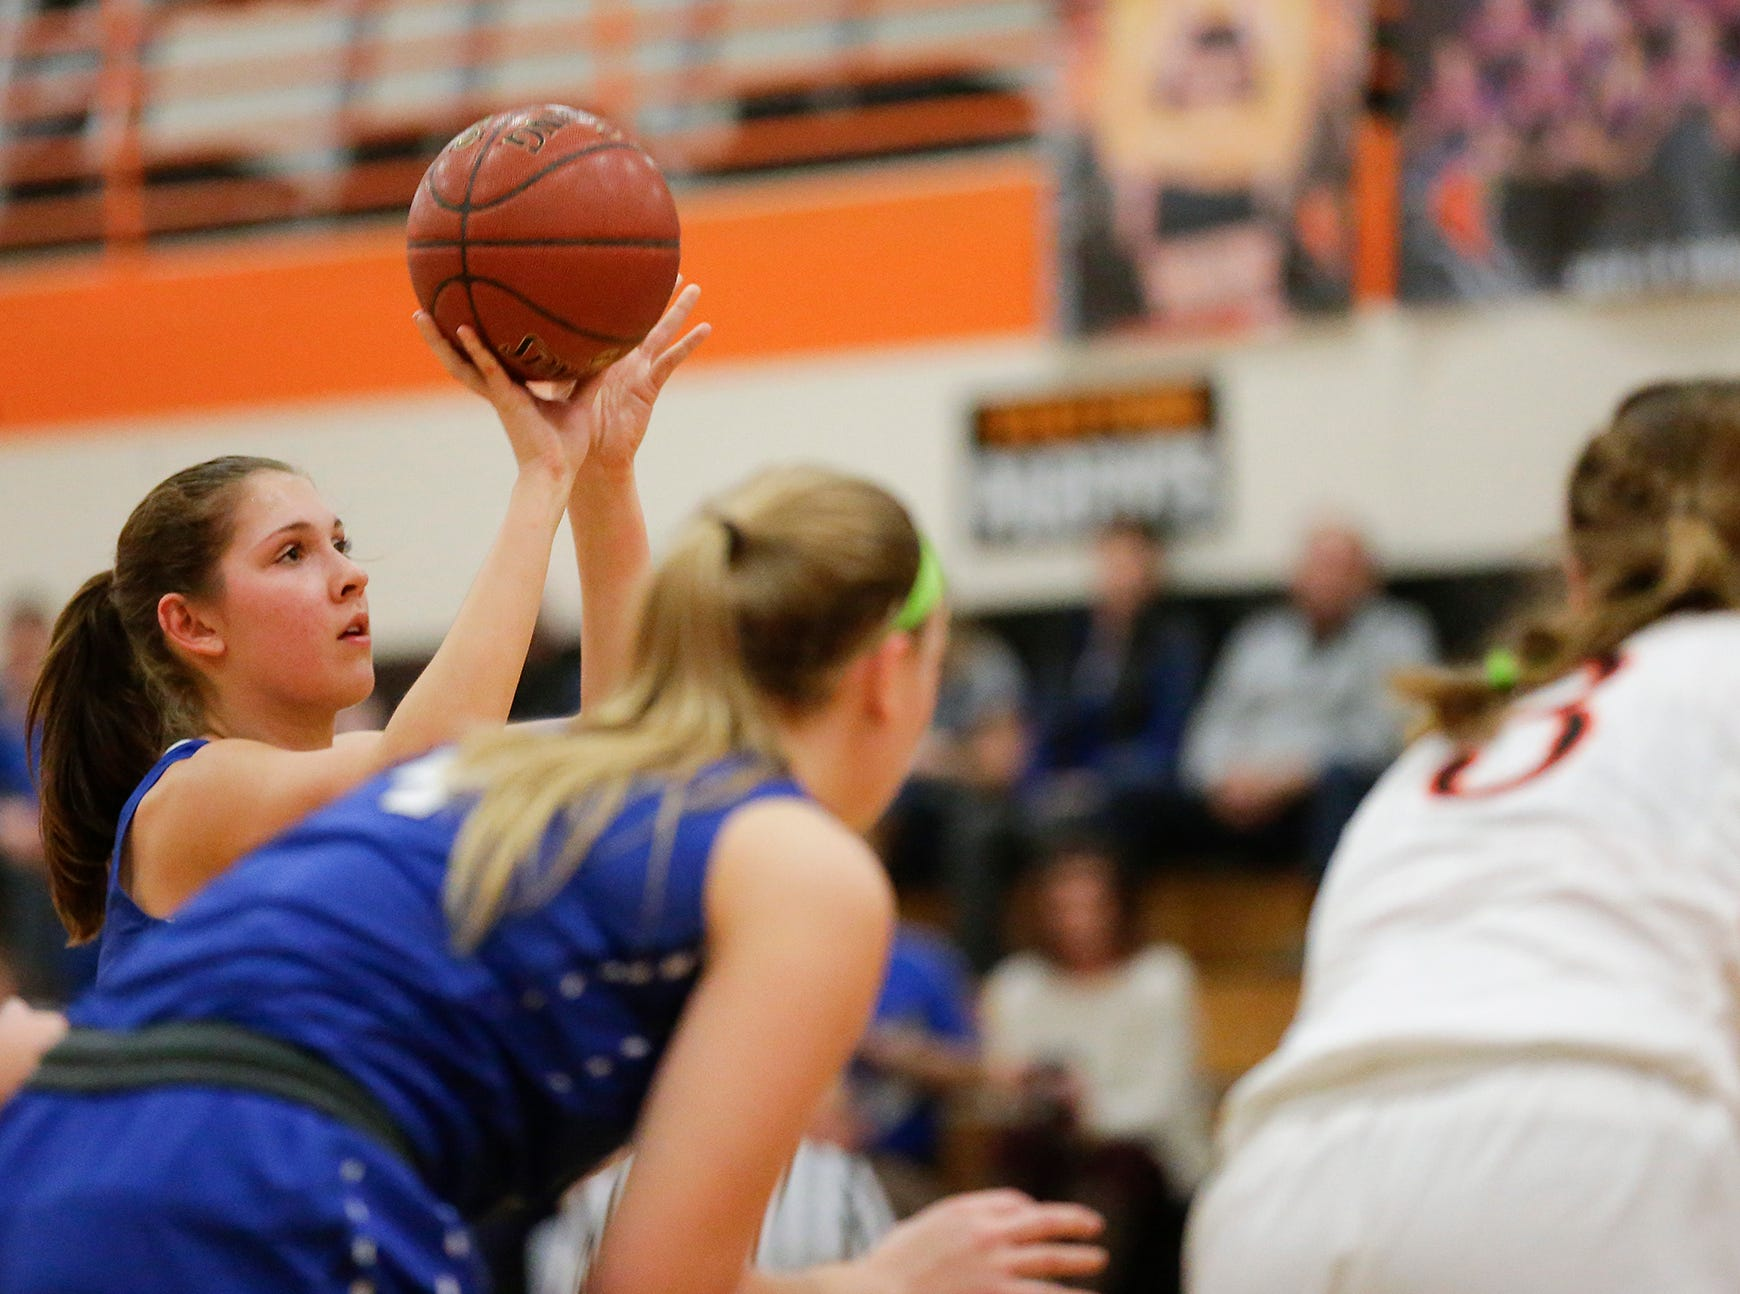 St. Mary's Springs Academy girls basketball's Maddie Gehring shoots a free throw against North Fond du Lac High School during their game Friday, January 4, 2019 in North Fond du lac. Doug Raflik/USA TODAY NETWORK-Wisconsin